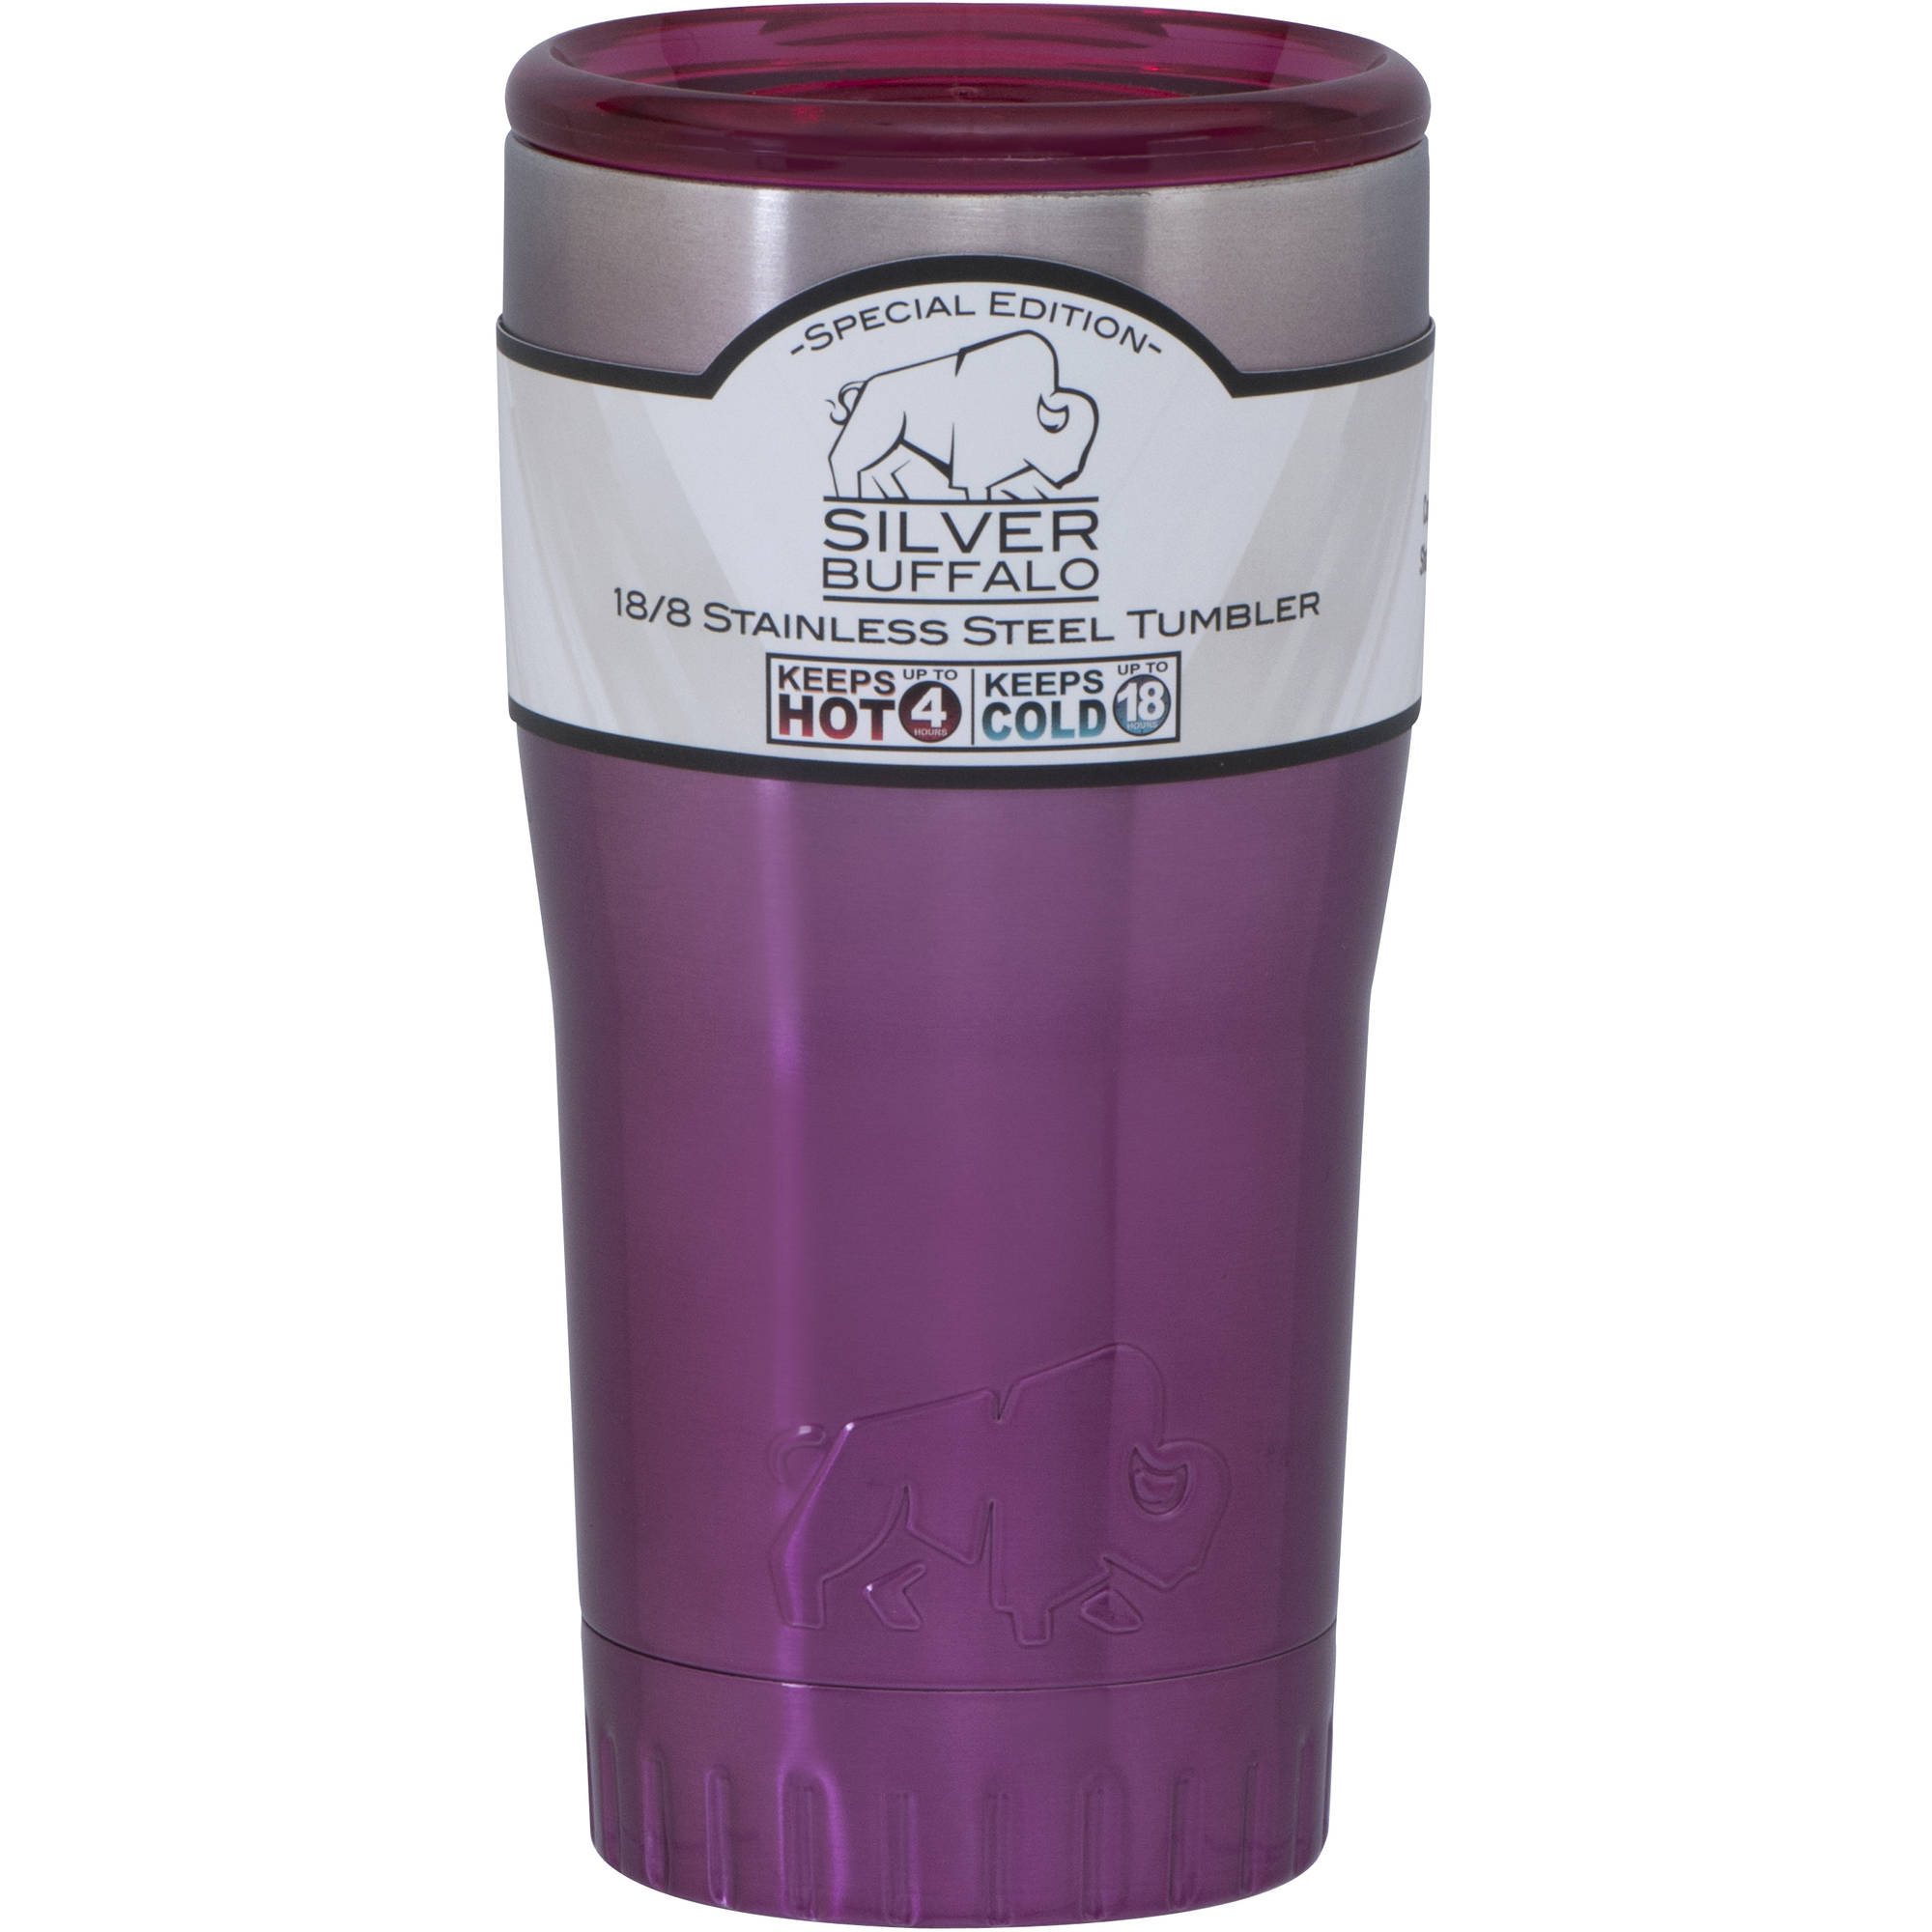 20 oz Stainless Steel Tumbler Cup by Silver Buffalo Ombre Pink by Generic